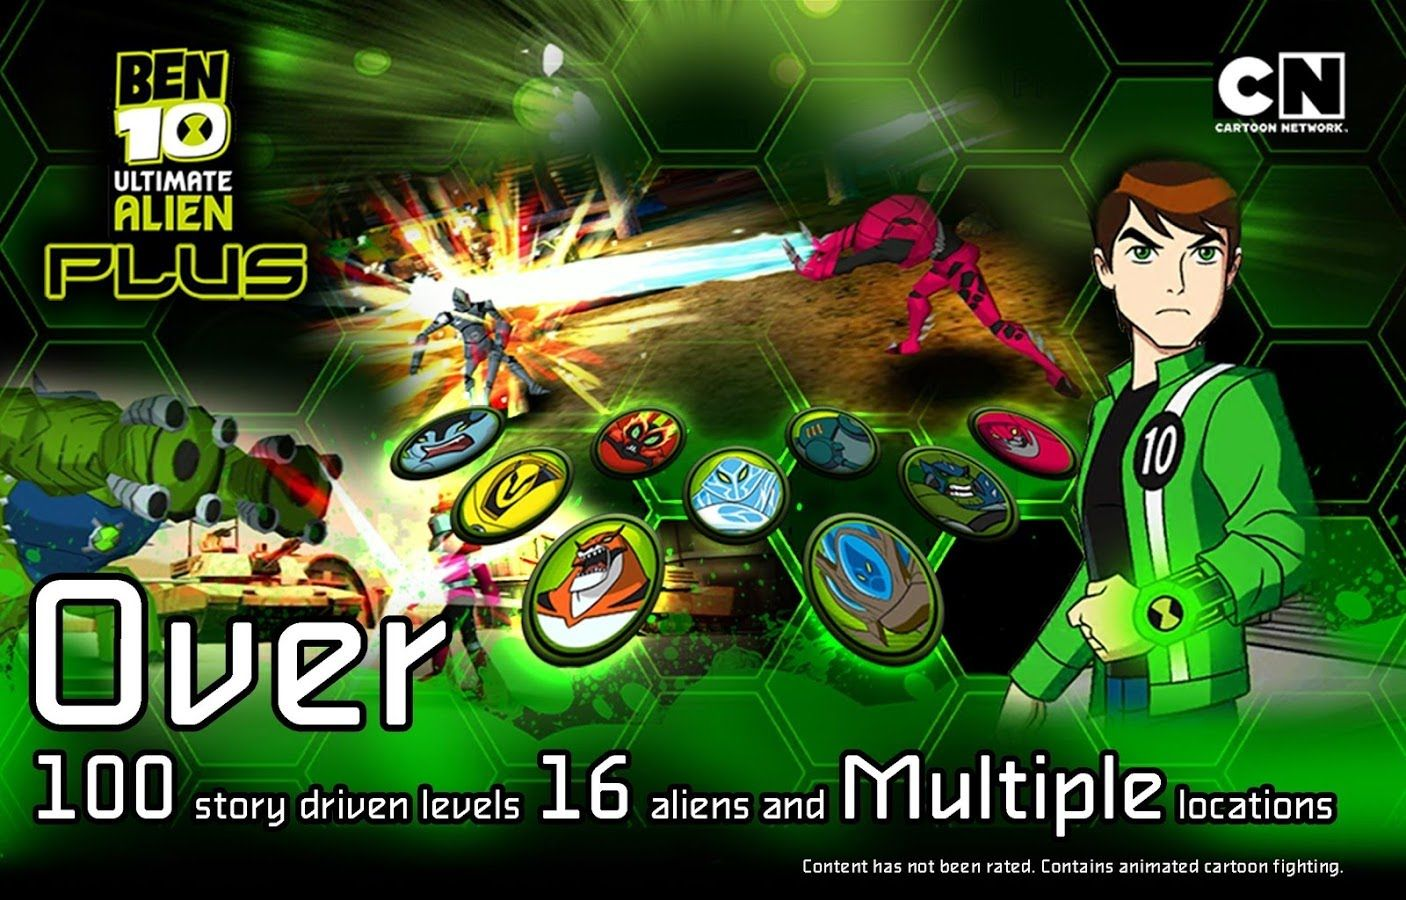 Be ben 10 games coloring game online - Ben 10 Game Ben 10 Ultimate Alien Xenodrome Arcade Mode Spongebob